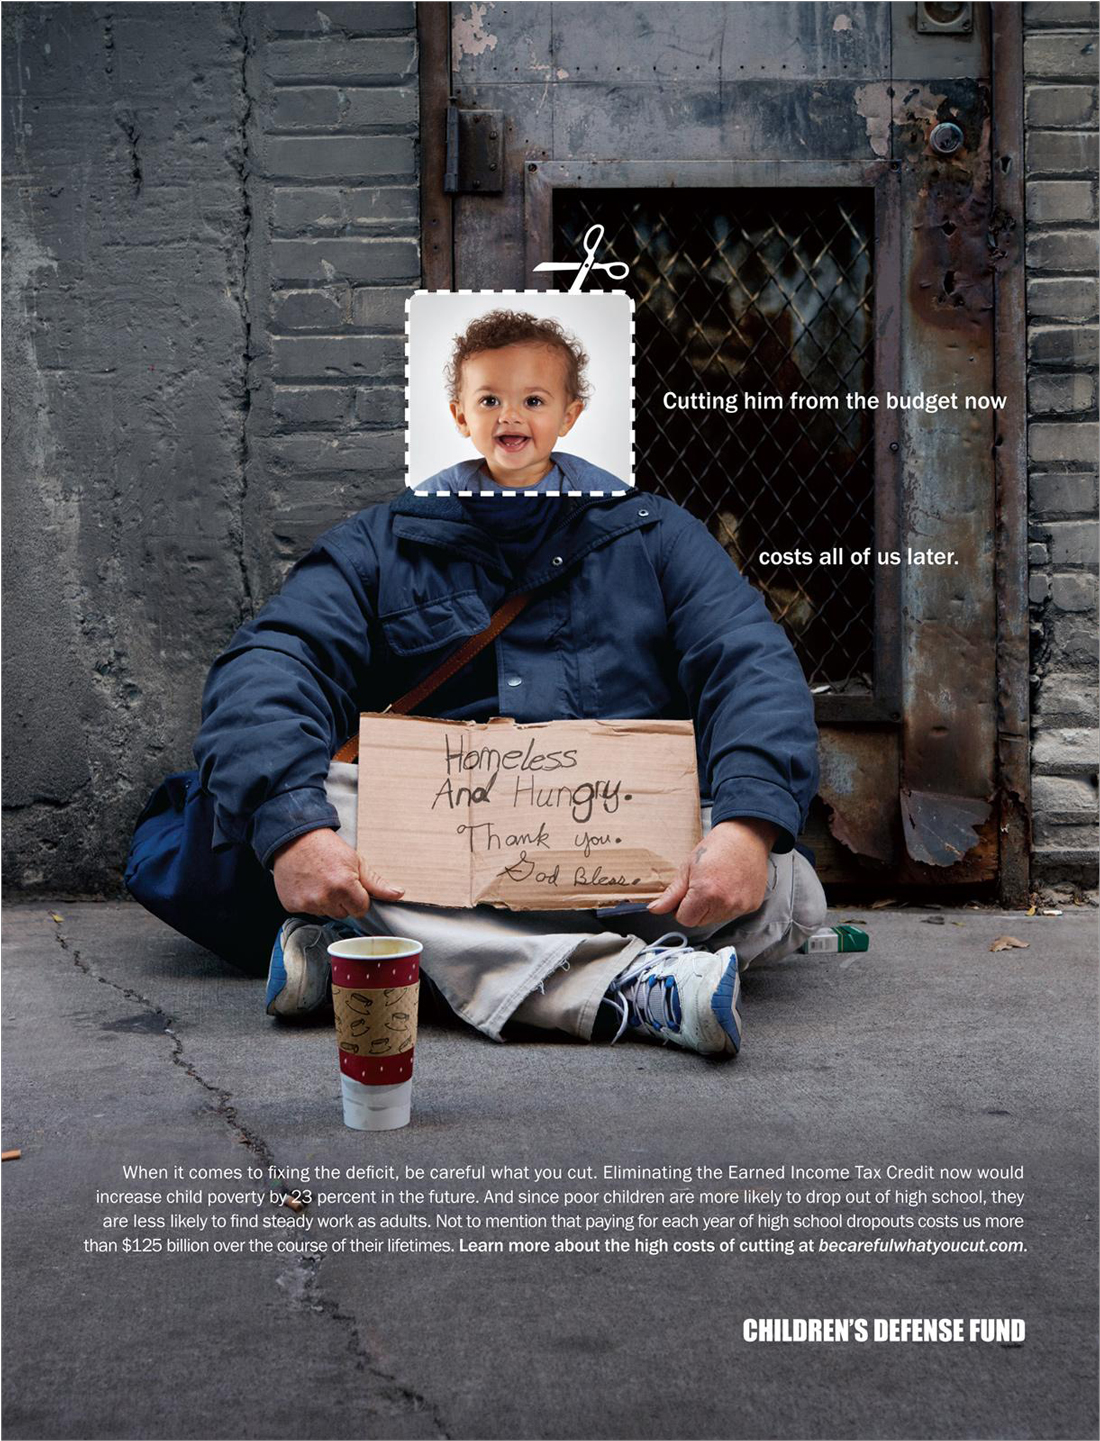 17 Creative Visual Marketing Campaigns by Nonprofits-Children-s-Defense-Fund